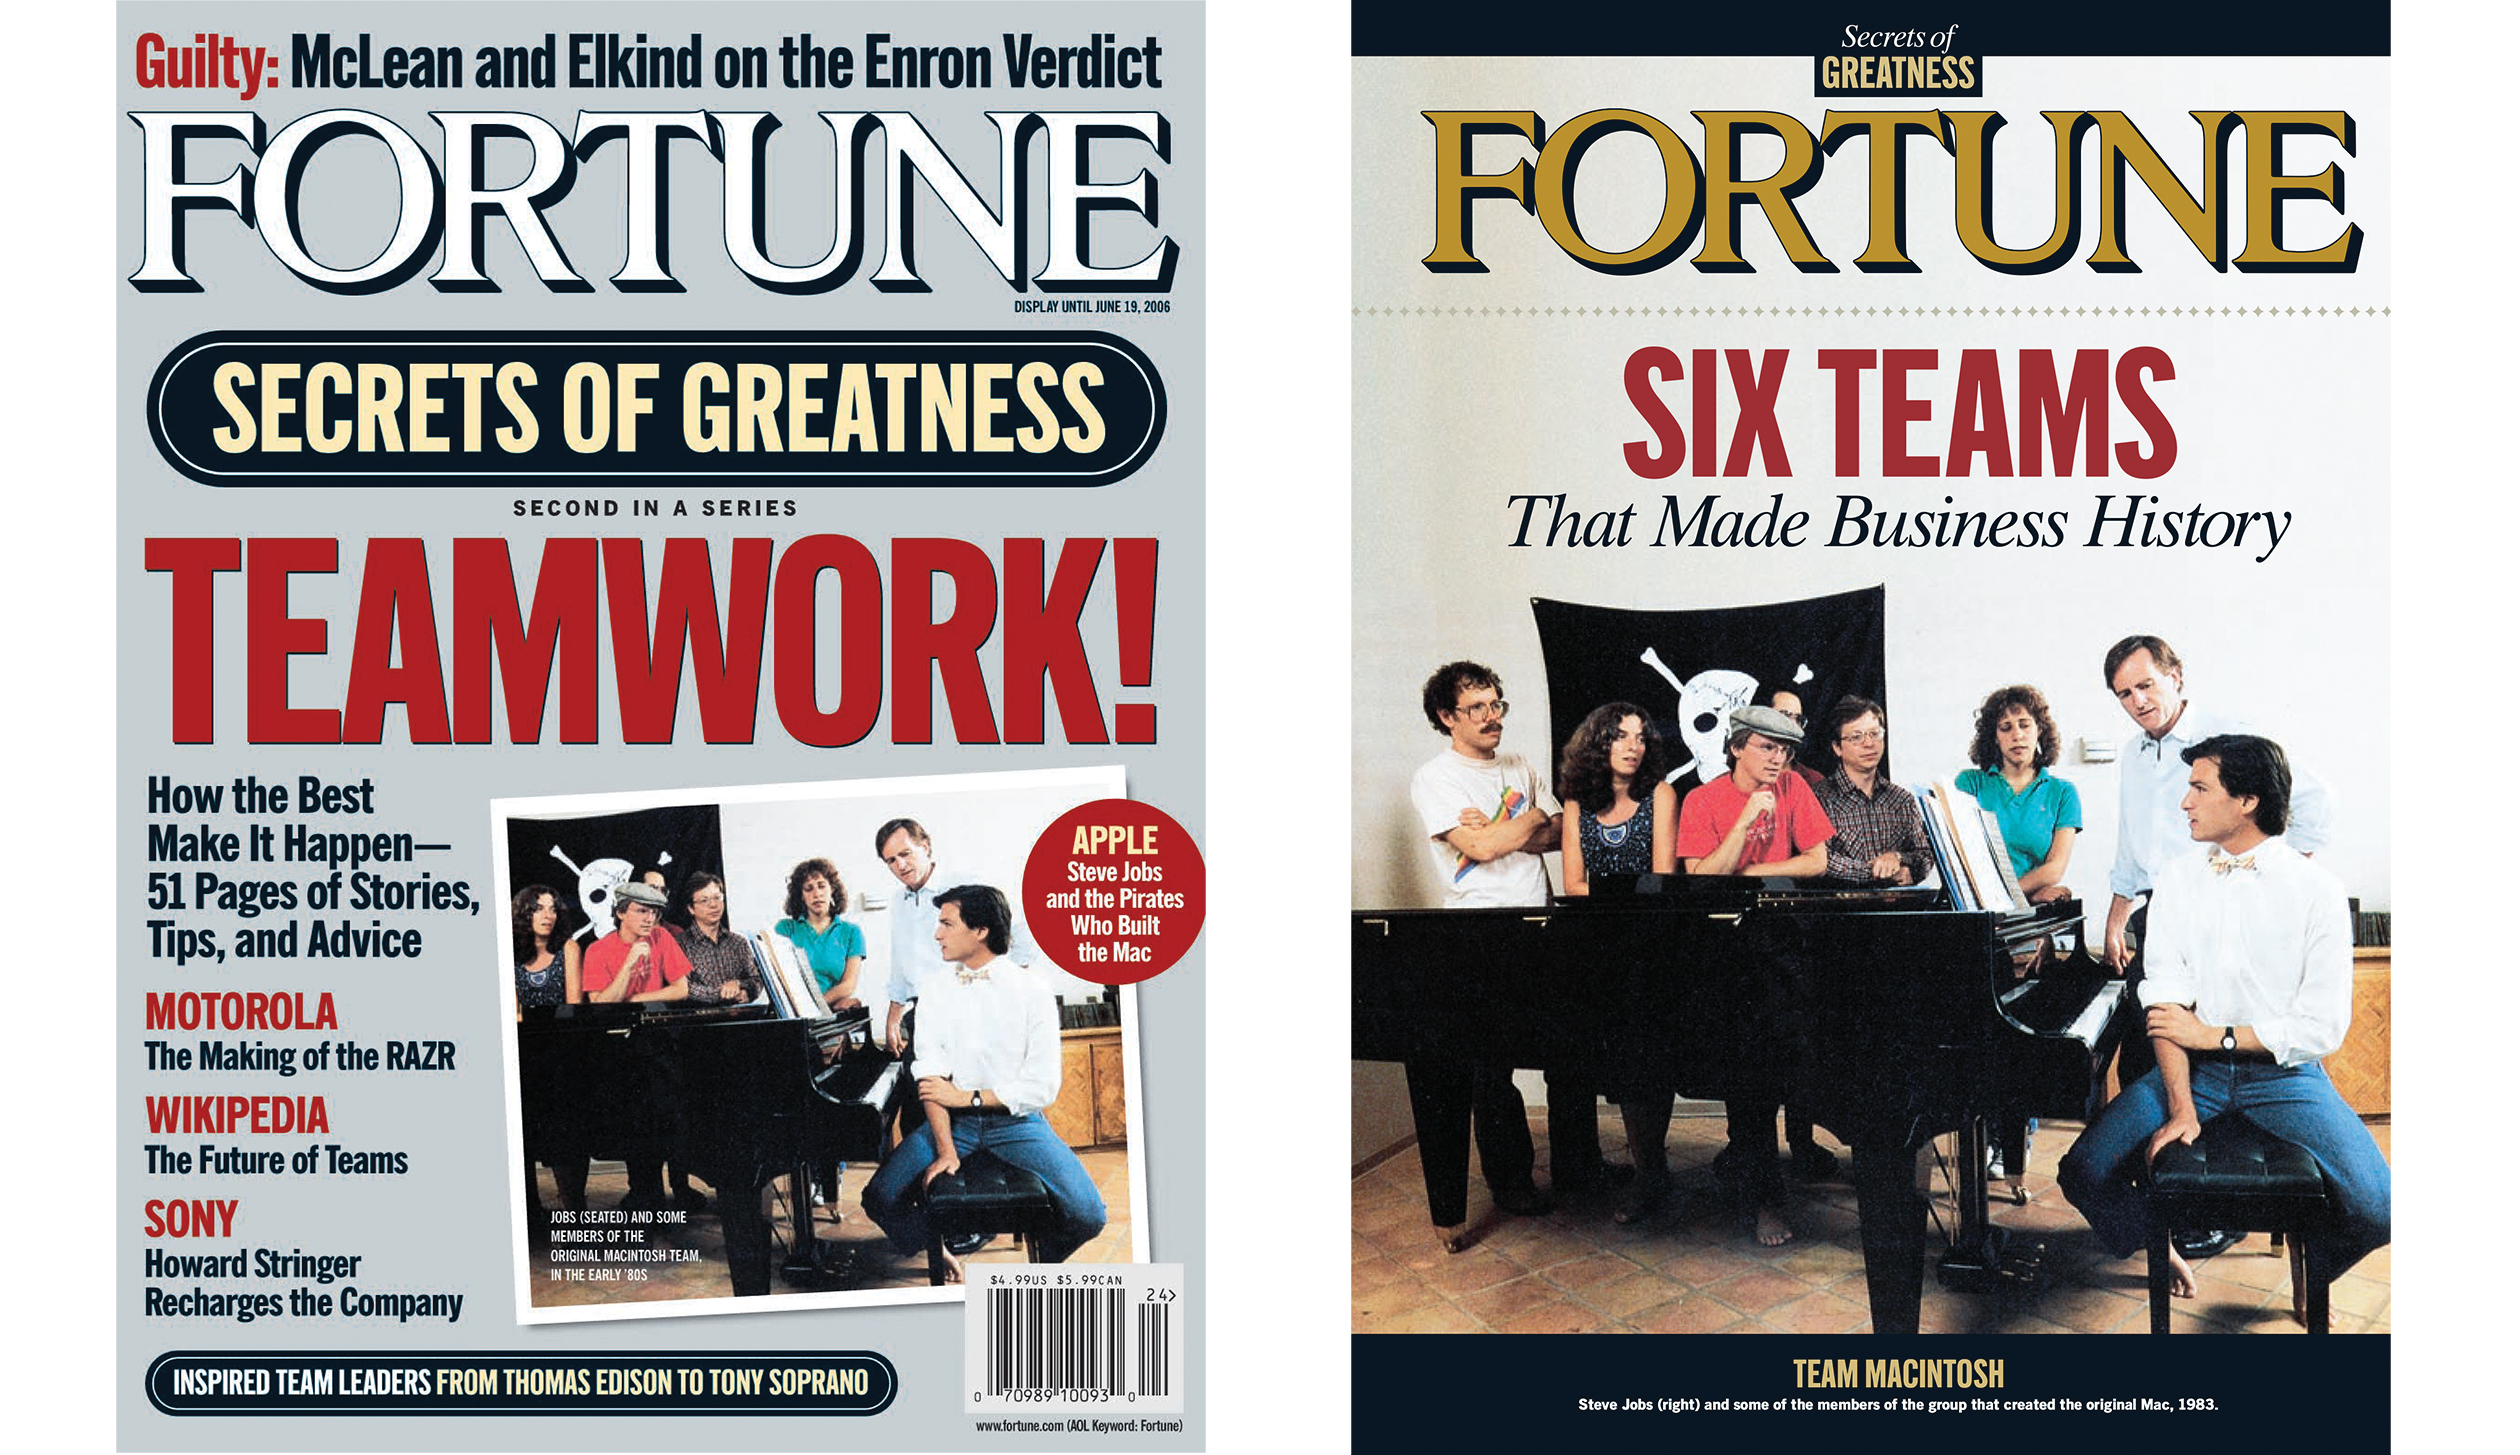 The June 19, 2006 cover and inside cover of Fortune that ran this 1983 photo of Steve Jobs, on the right of the photo, with some of the members of the group that created the original Mac.